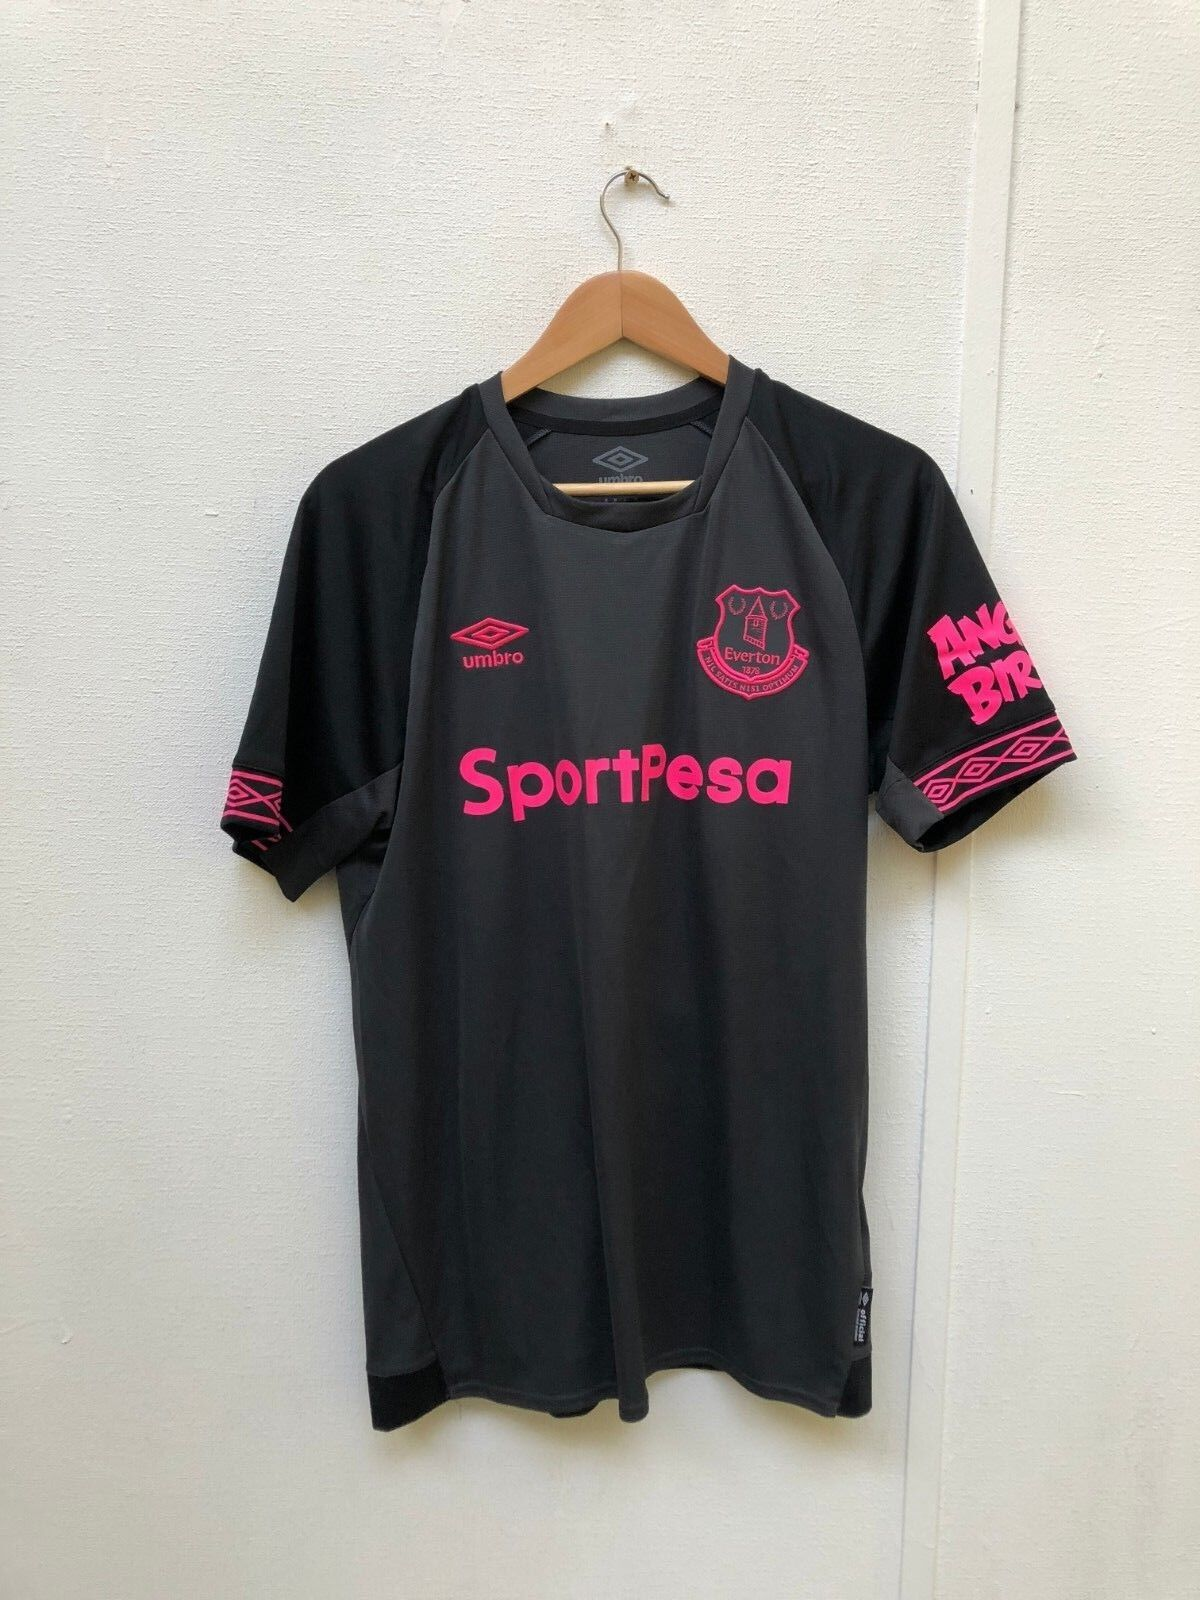 Everdeon FC Umbro Da Uomo 201819 away shirtMediumricharlison 30NUOVO